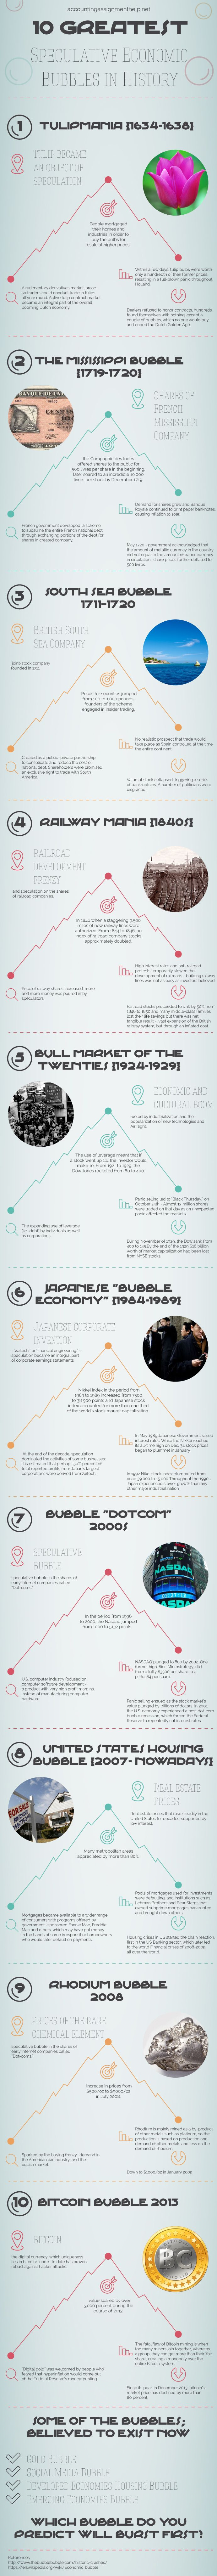 Most Famous Financial Bubbles in History